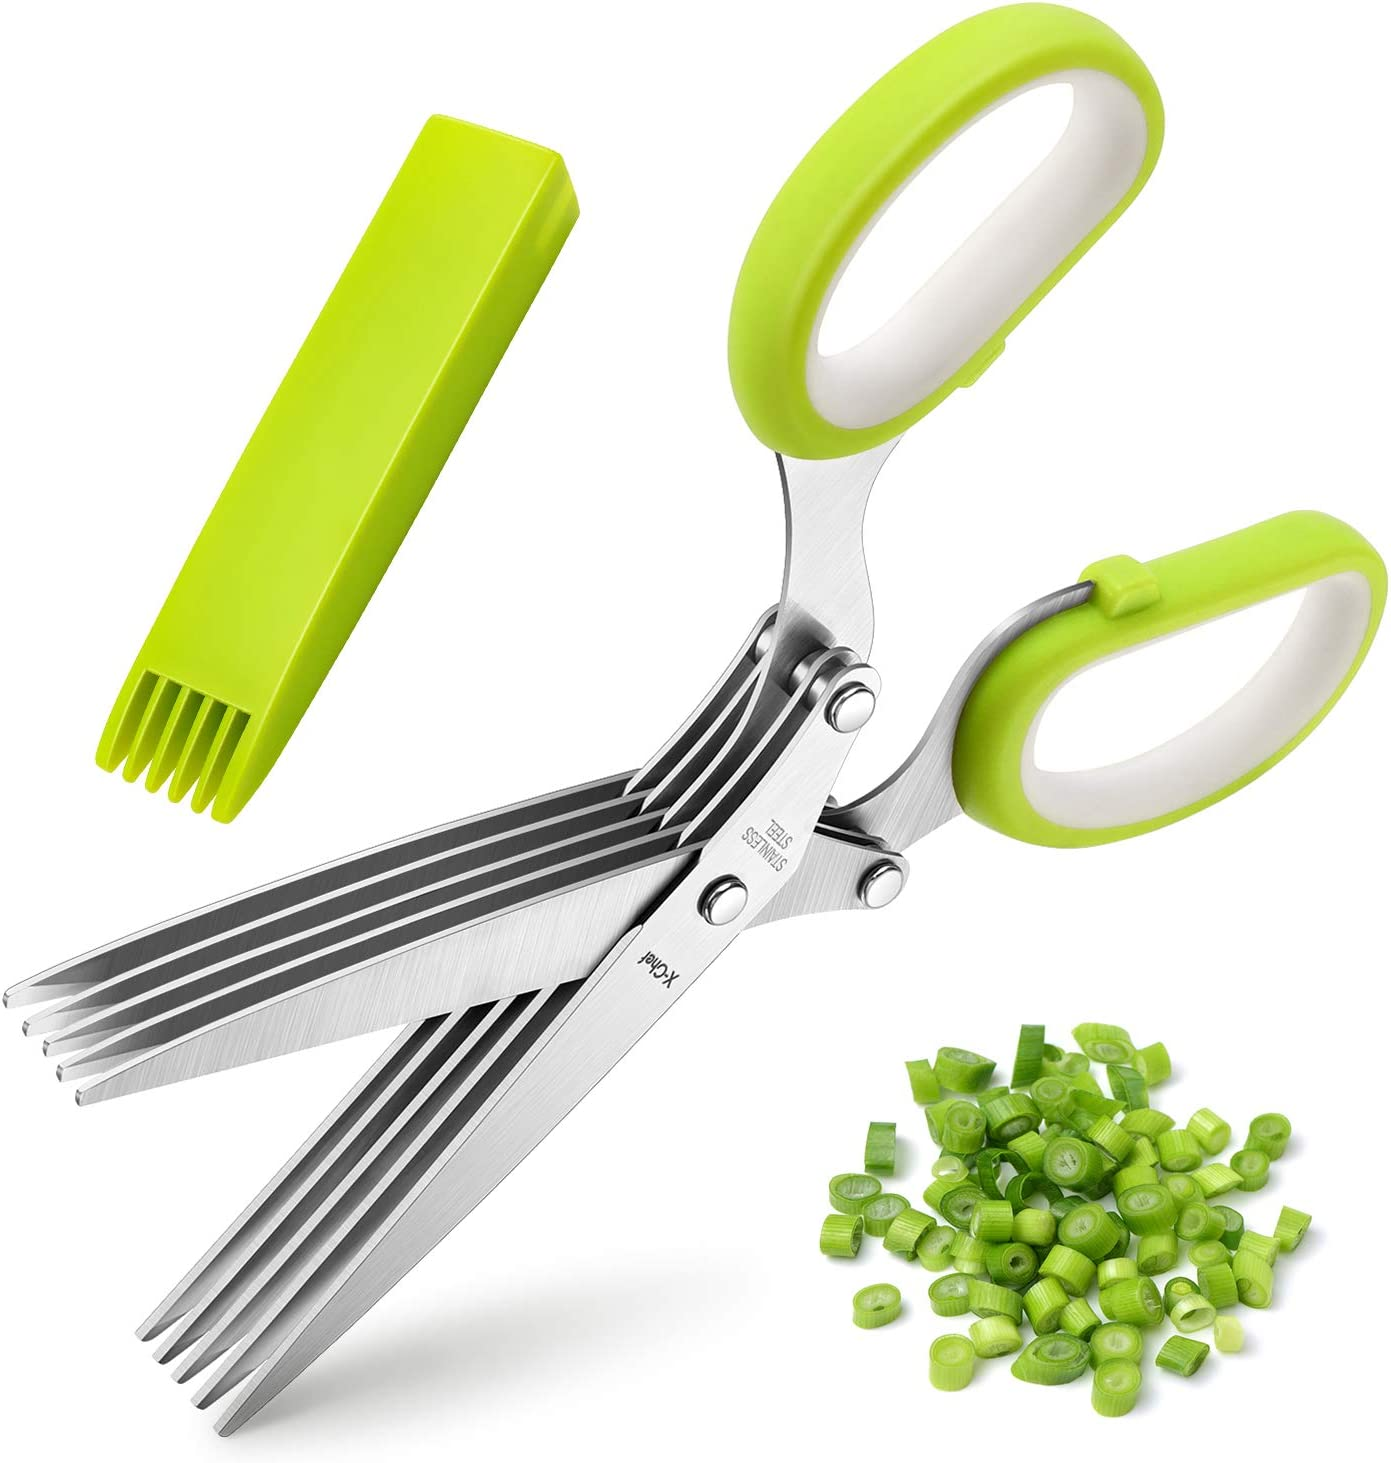 5-Blade Herb Scissors with Cleaning Cover